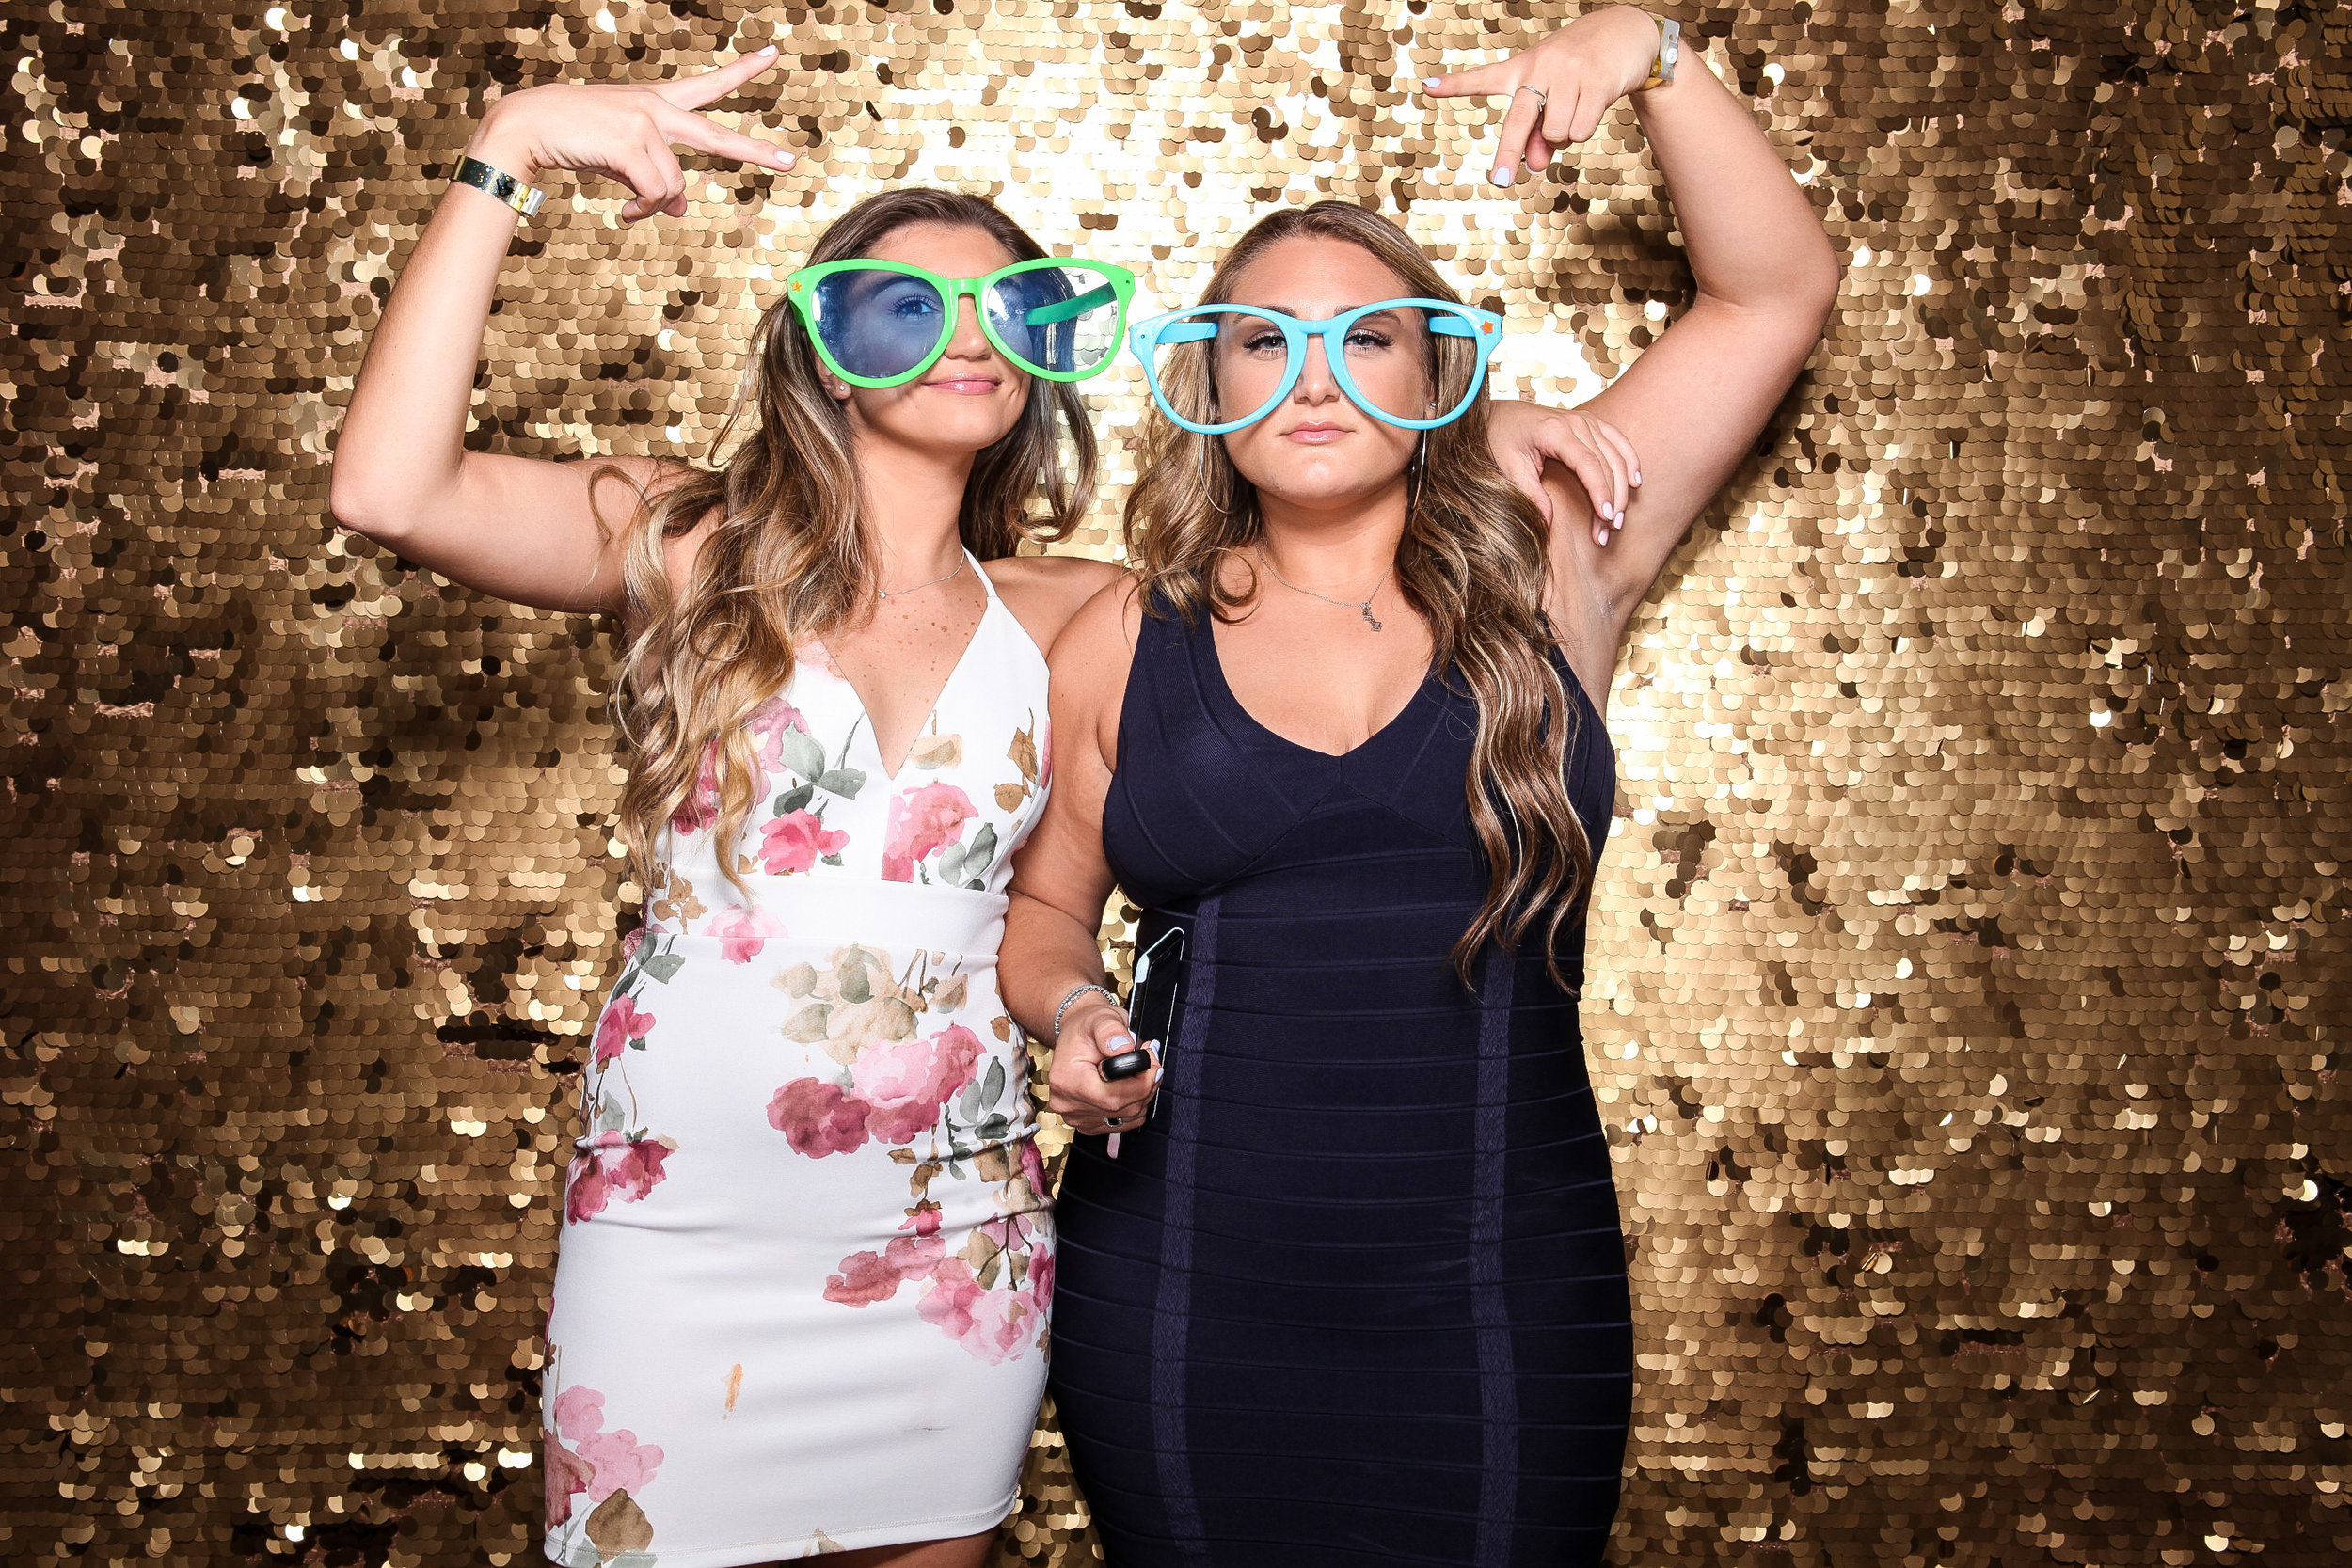 20190503_Adelphi_Senior_Formal-038.jpg